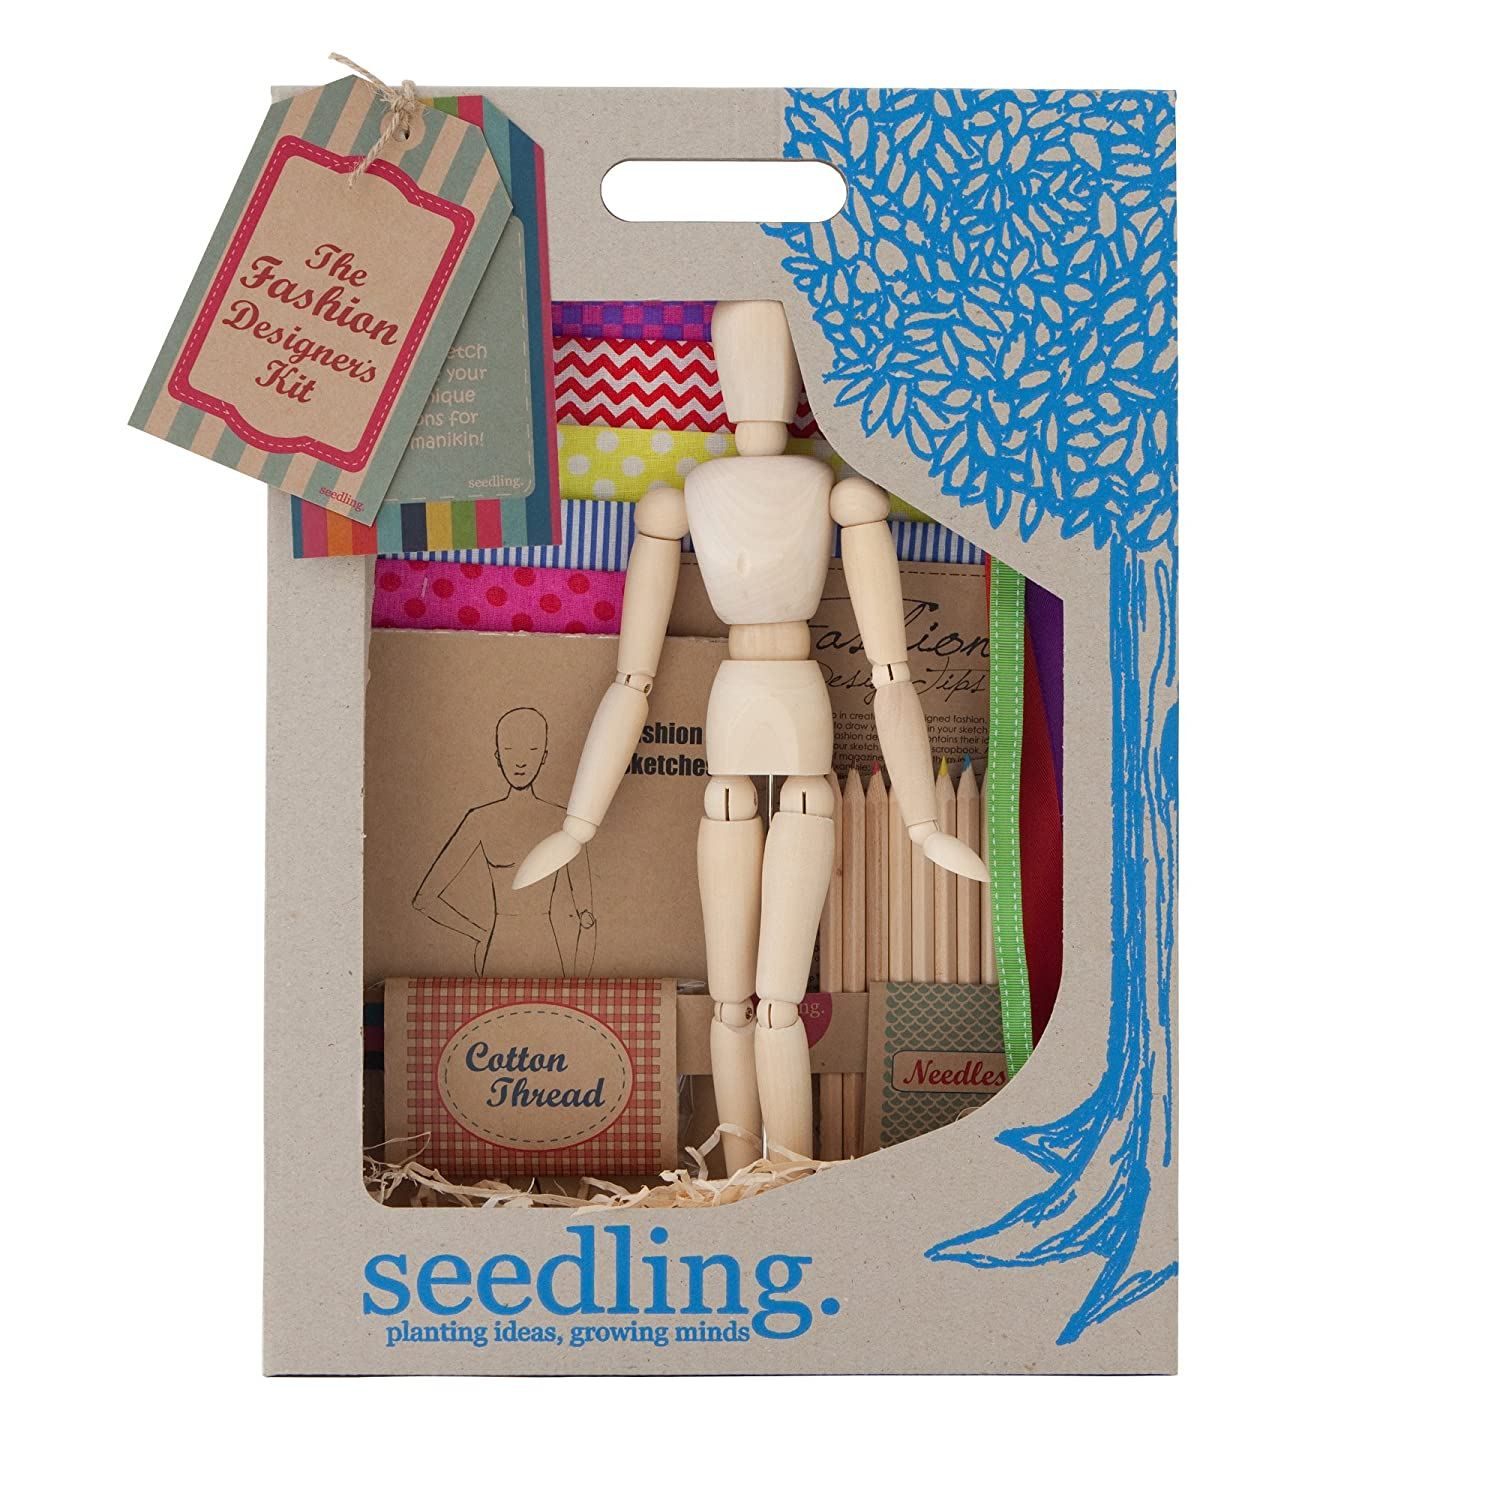 Buy Seedling Fashion Designer Kit Online At Low Prices In India Amazon In